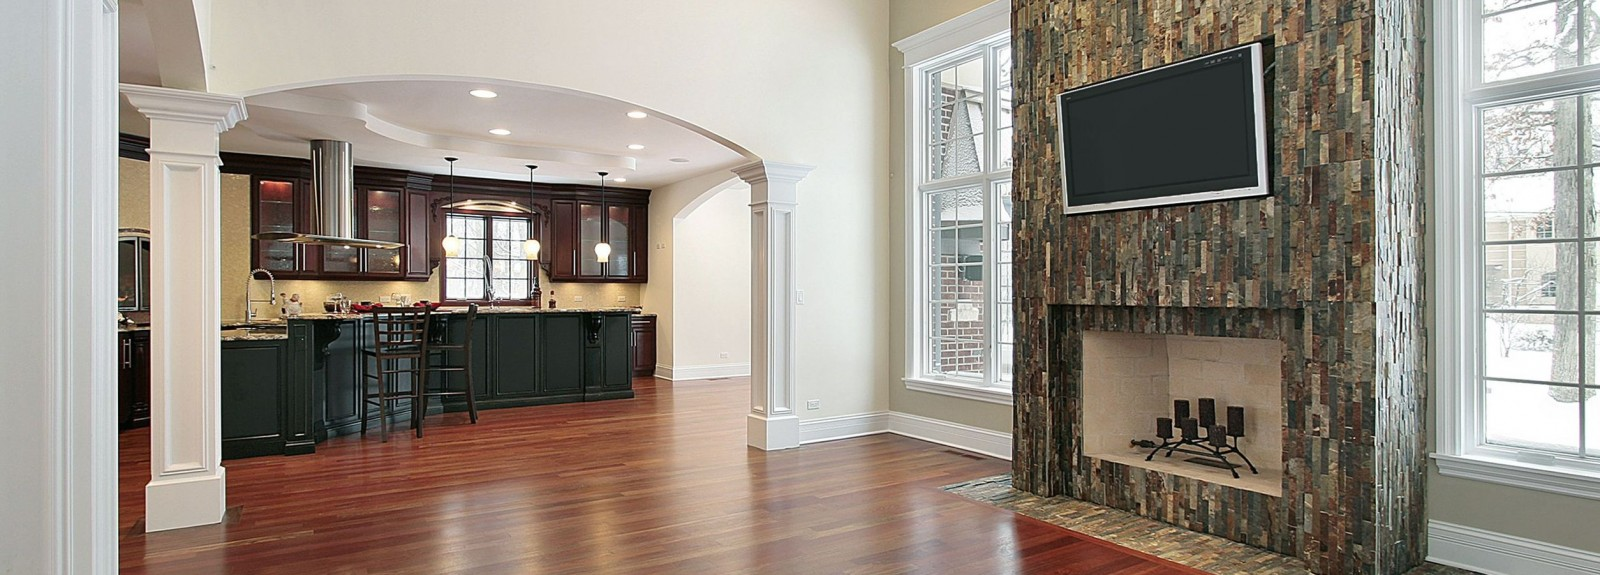 Imagine the natural looking hardwood floor in your family room…